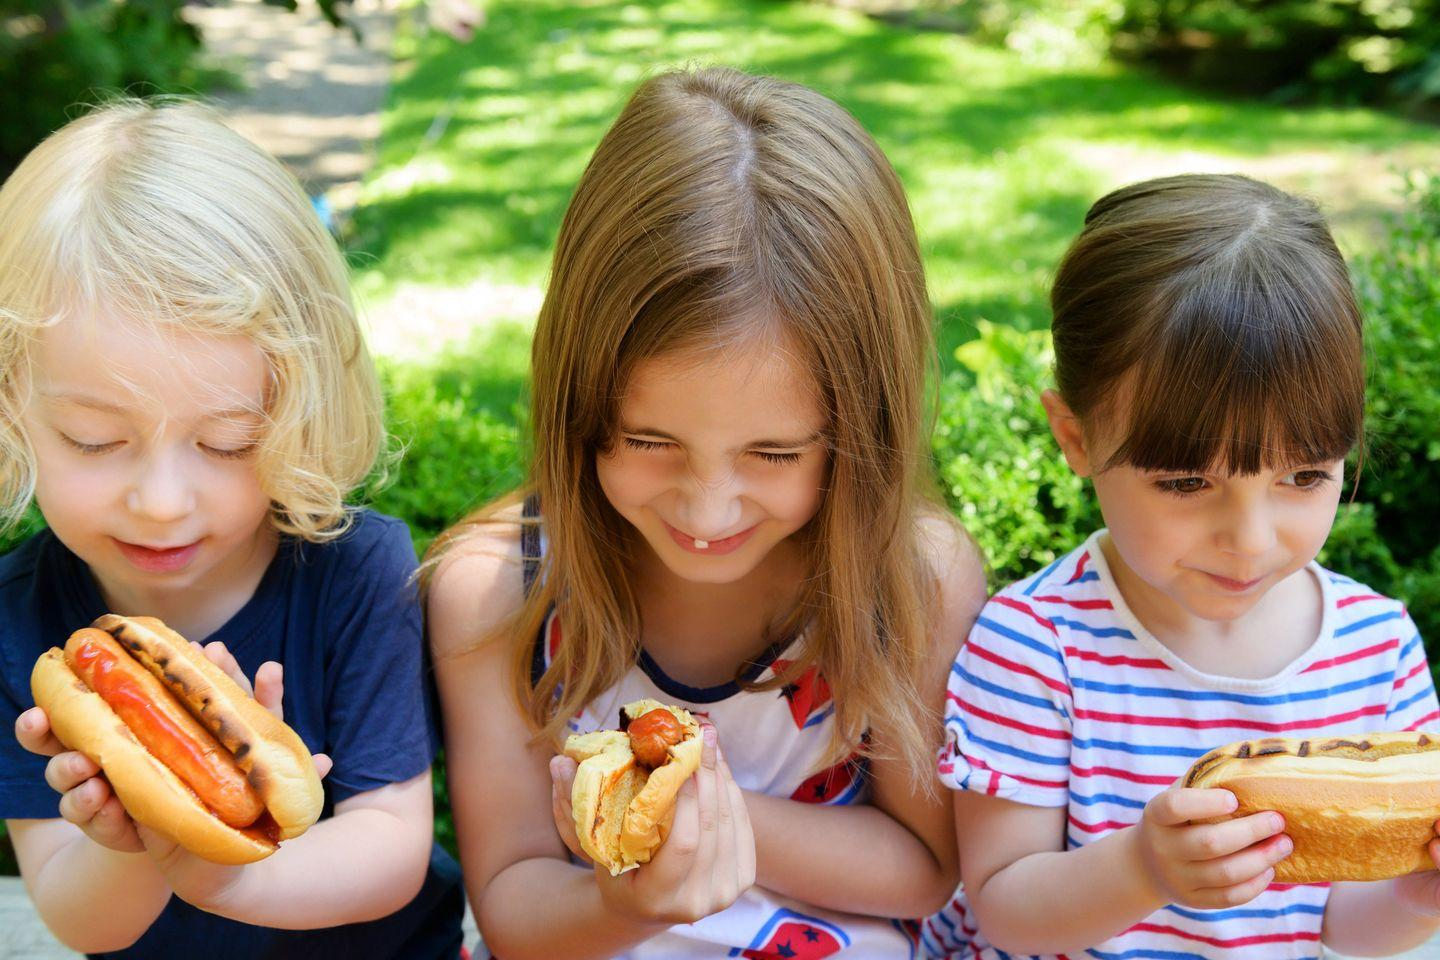 <p>If there's one food that represents the 4th of July, it's hot dogs. If you're feeling adventurous, recreate Nathan's Famous Hot Dog Eating Competition, or if you want something a little more tame (and easier to stomach) try a hot dog taste test where you can try out various relishes and mustards. </p>